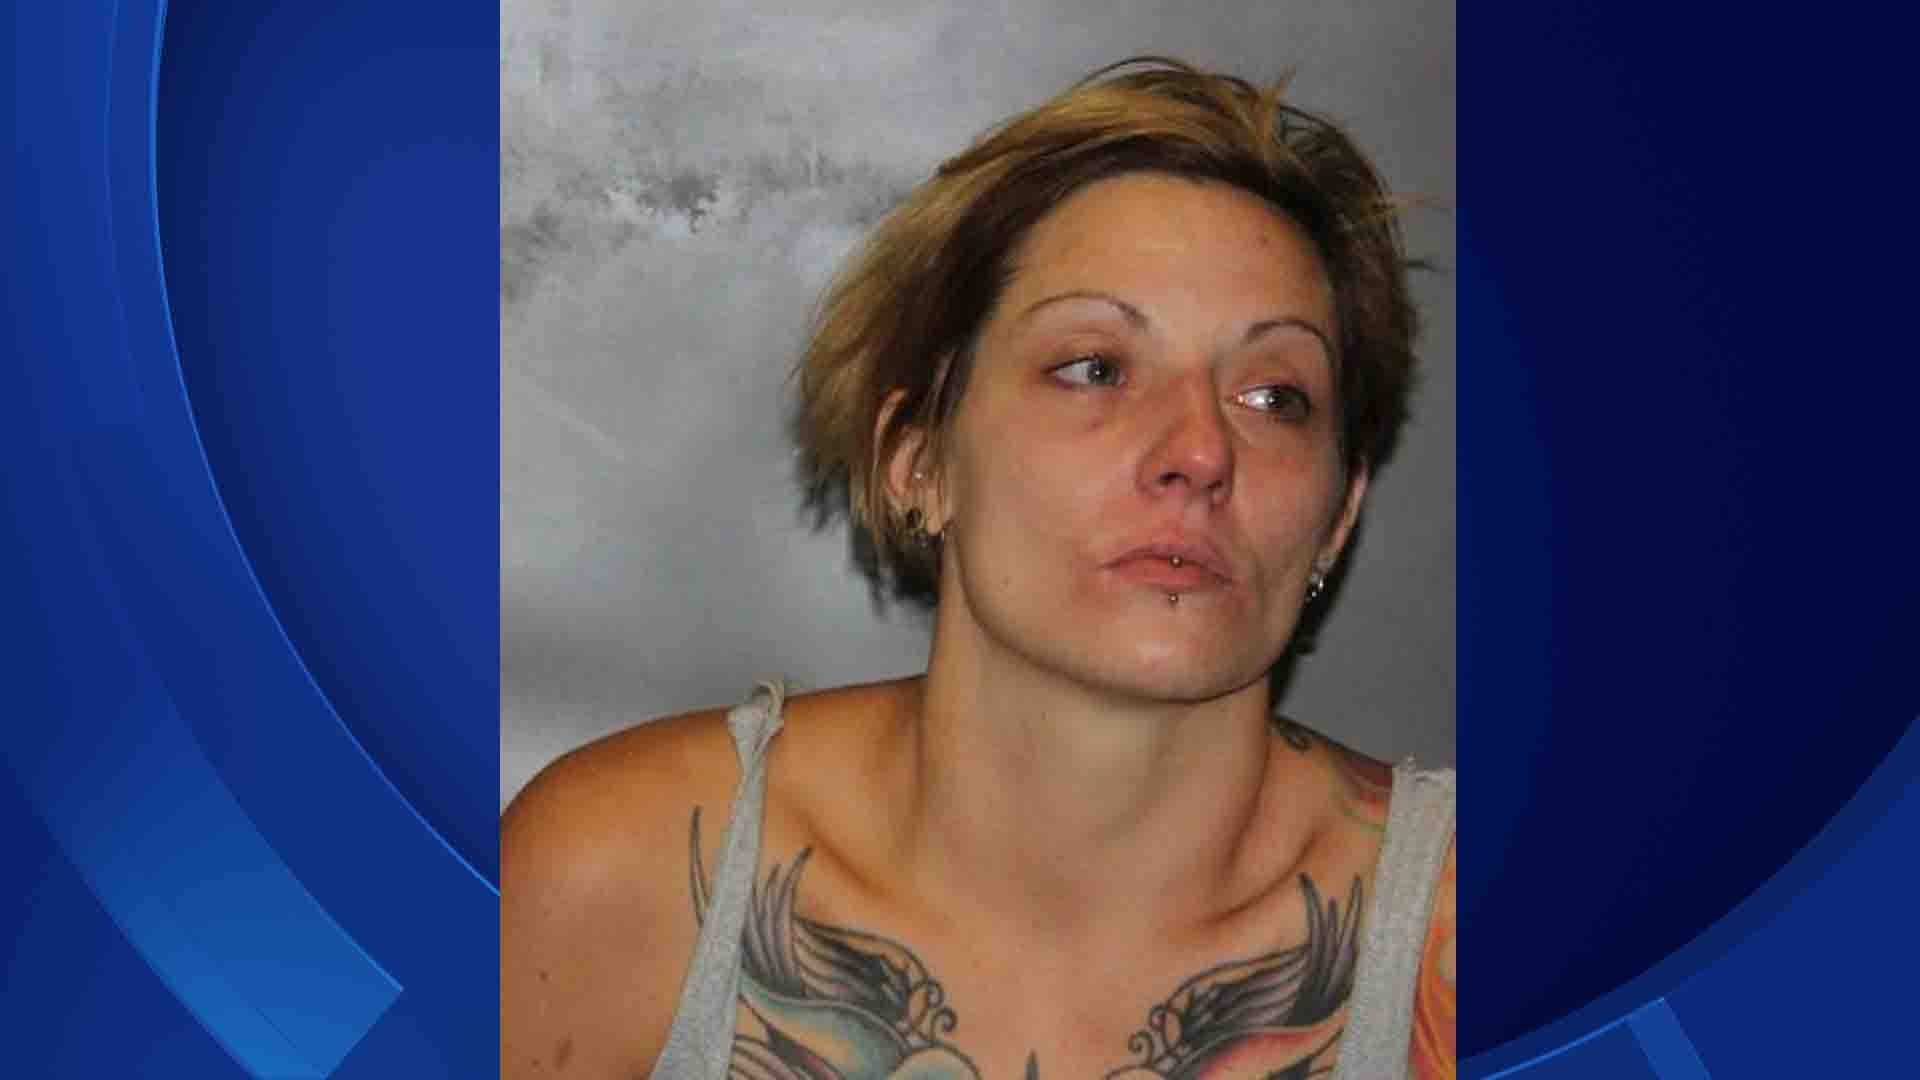 Tiffanie McDaniel. (West Haven police photo)